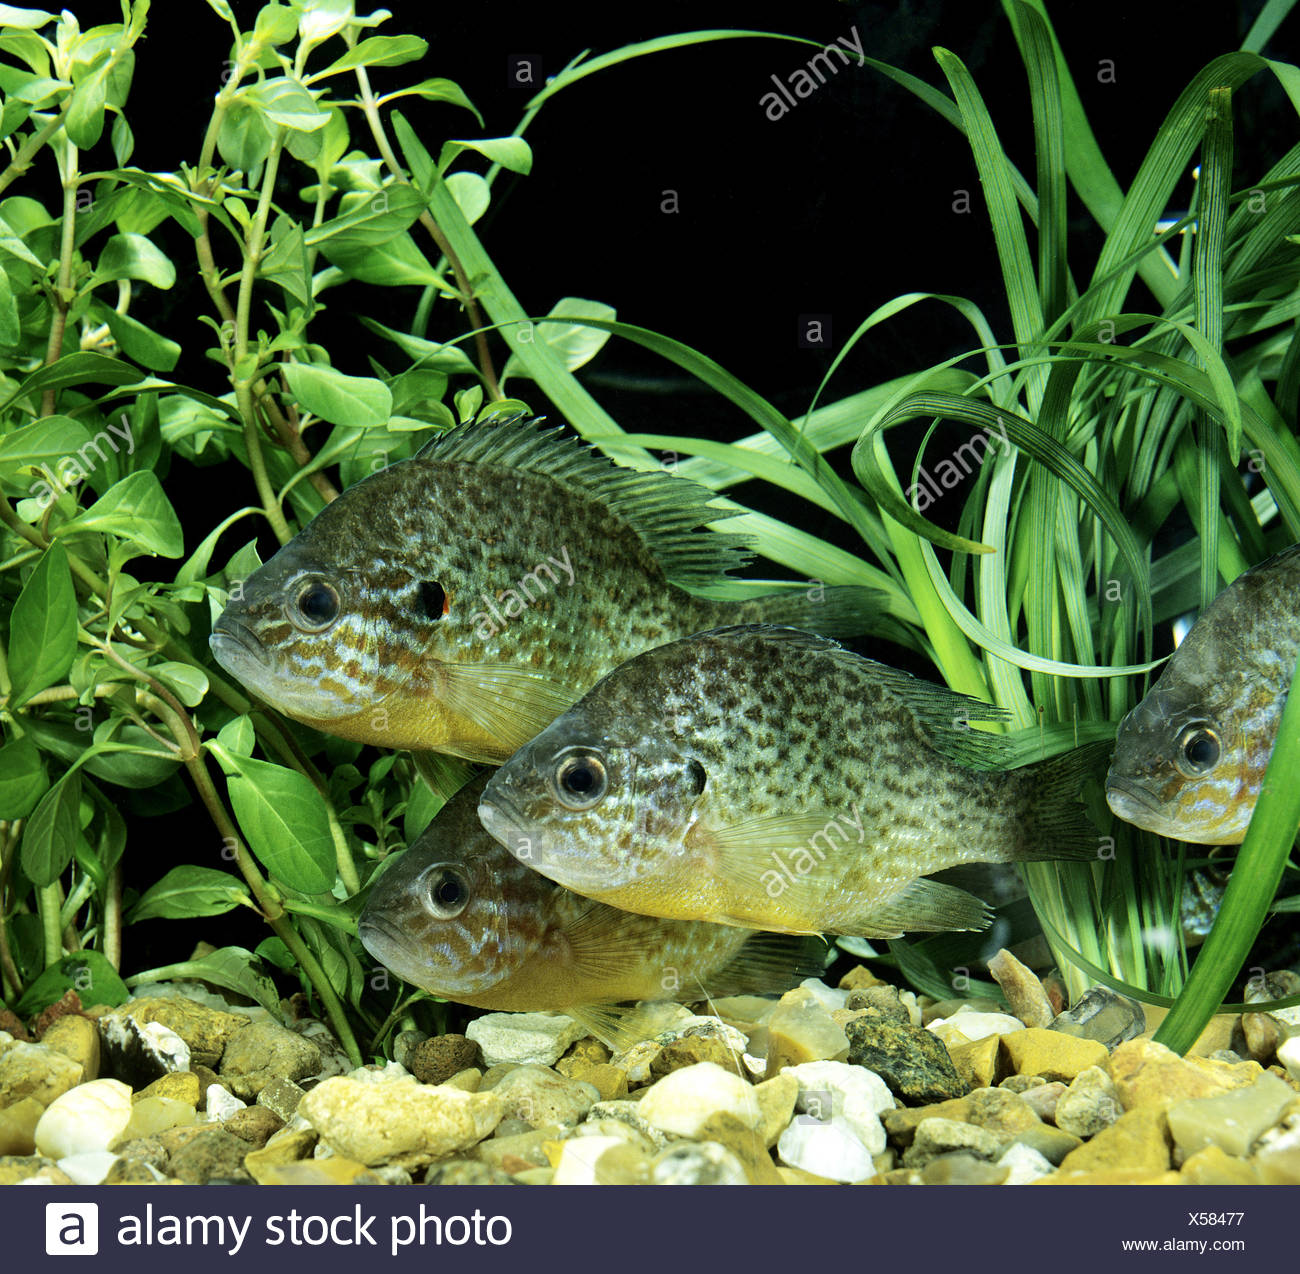 Pumpkinseed Sunfish, lepomis gibbosus Stock Photo